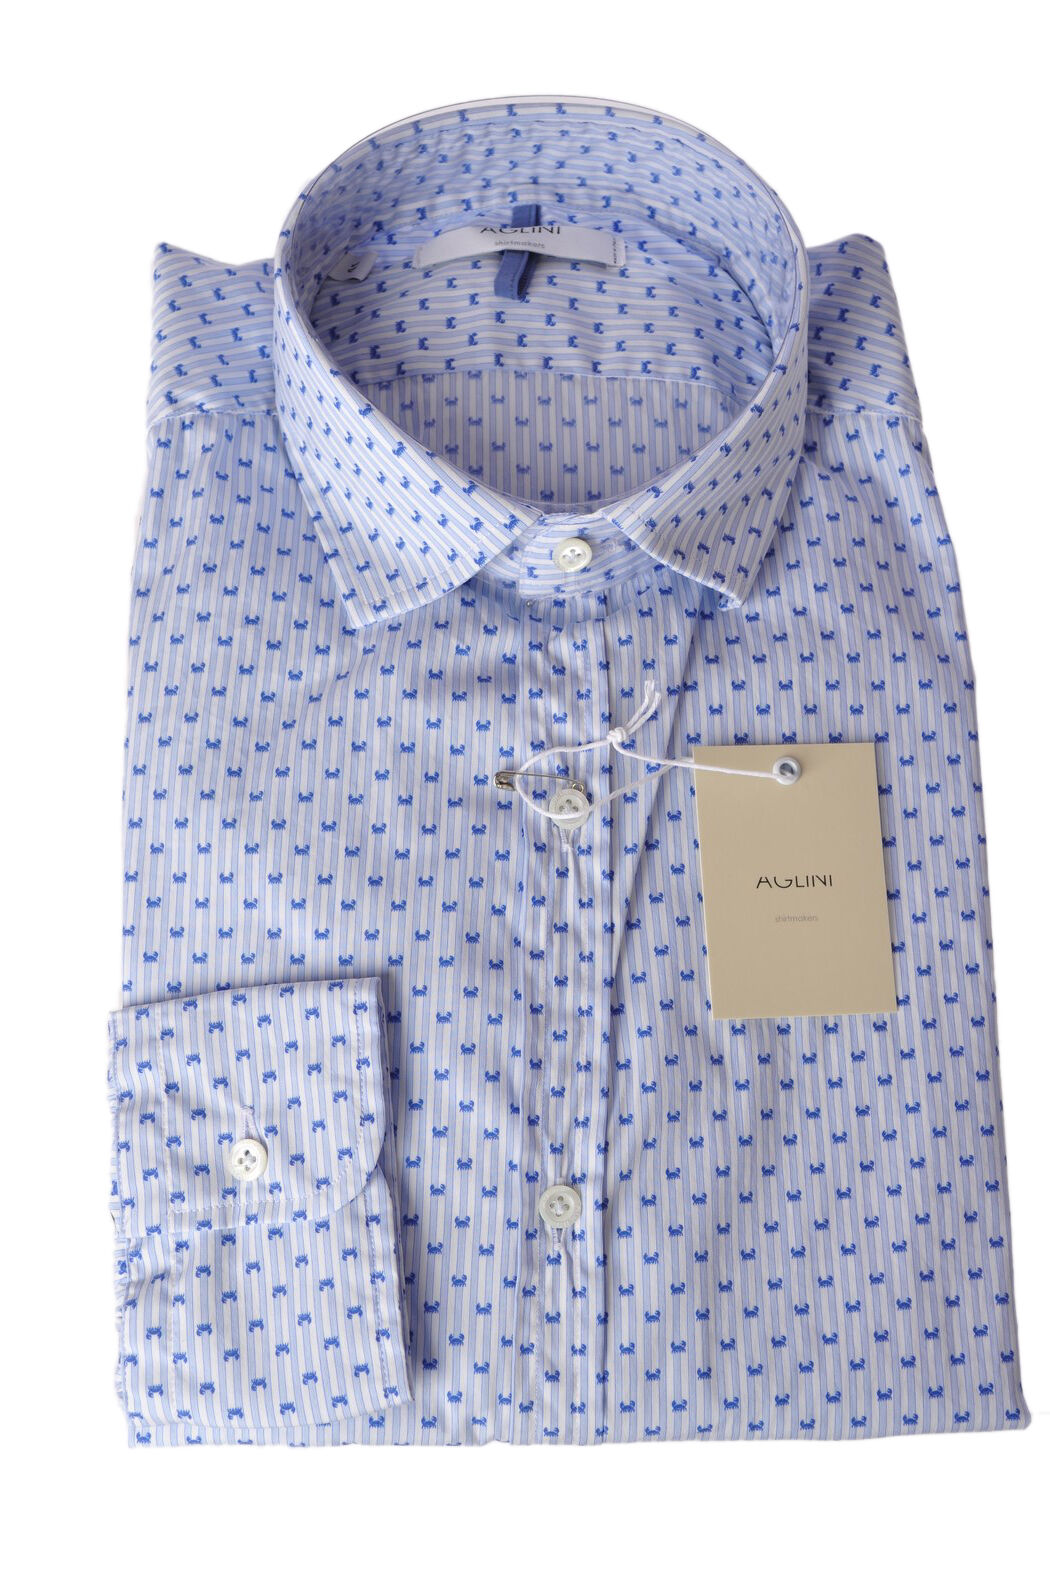 Aglini  -  Shirts - male - 302827A184049